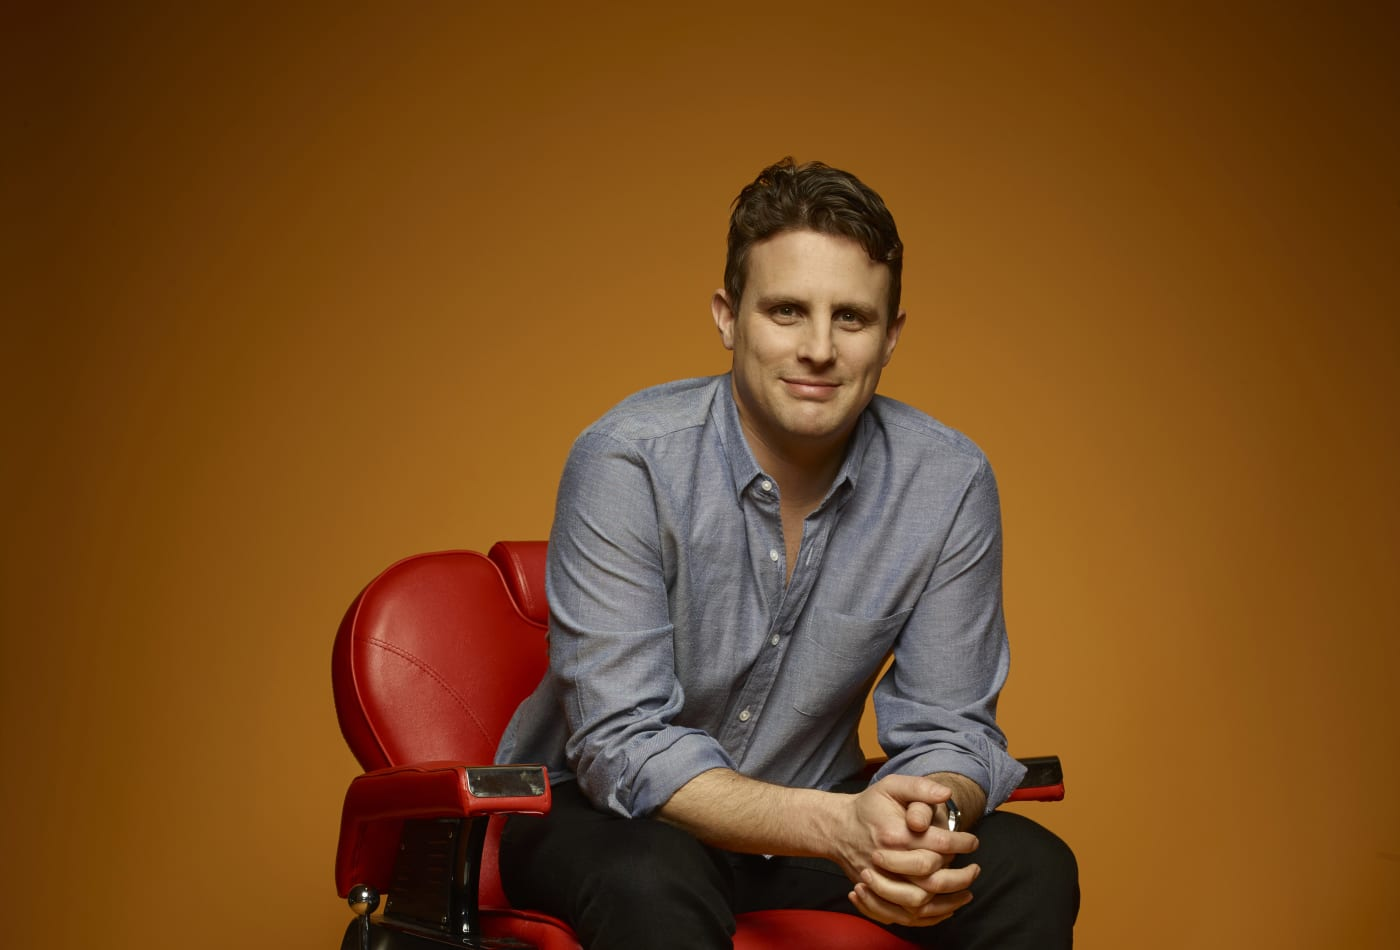 What happens when a business built on simplicity gets complicated? Dollar Shave Club's founder Michael Dubin found out